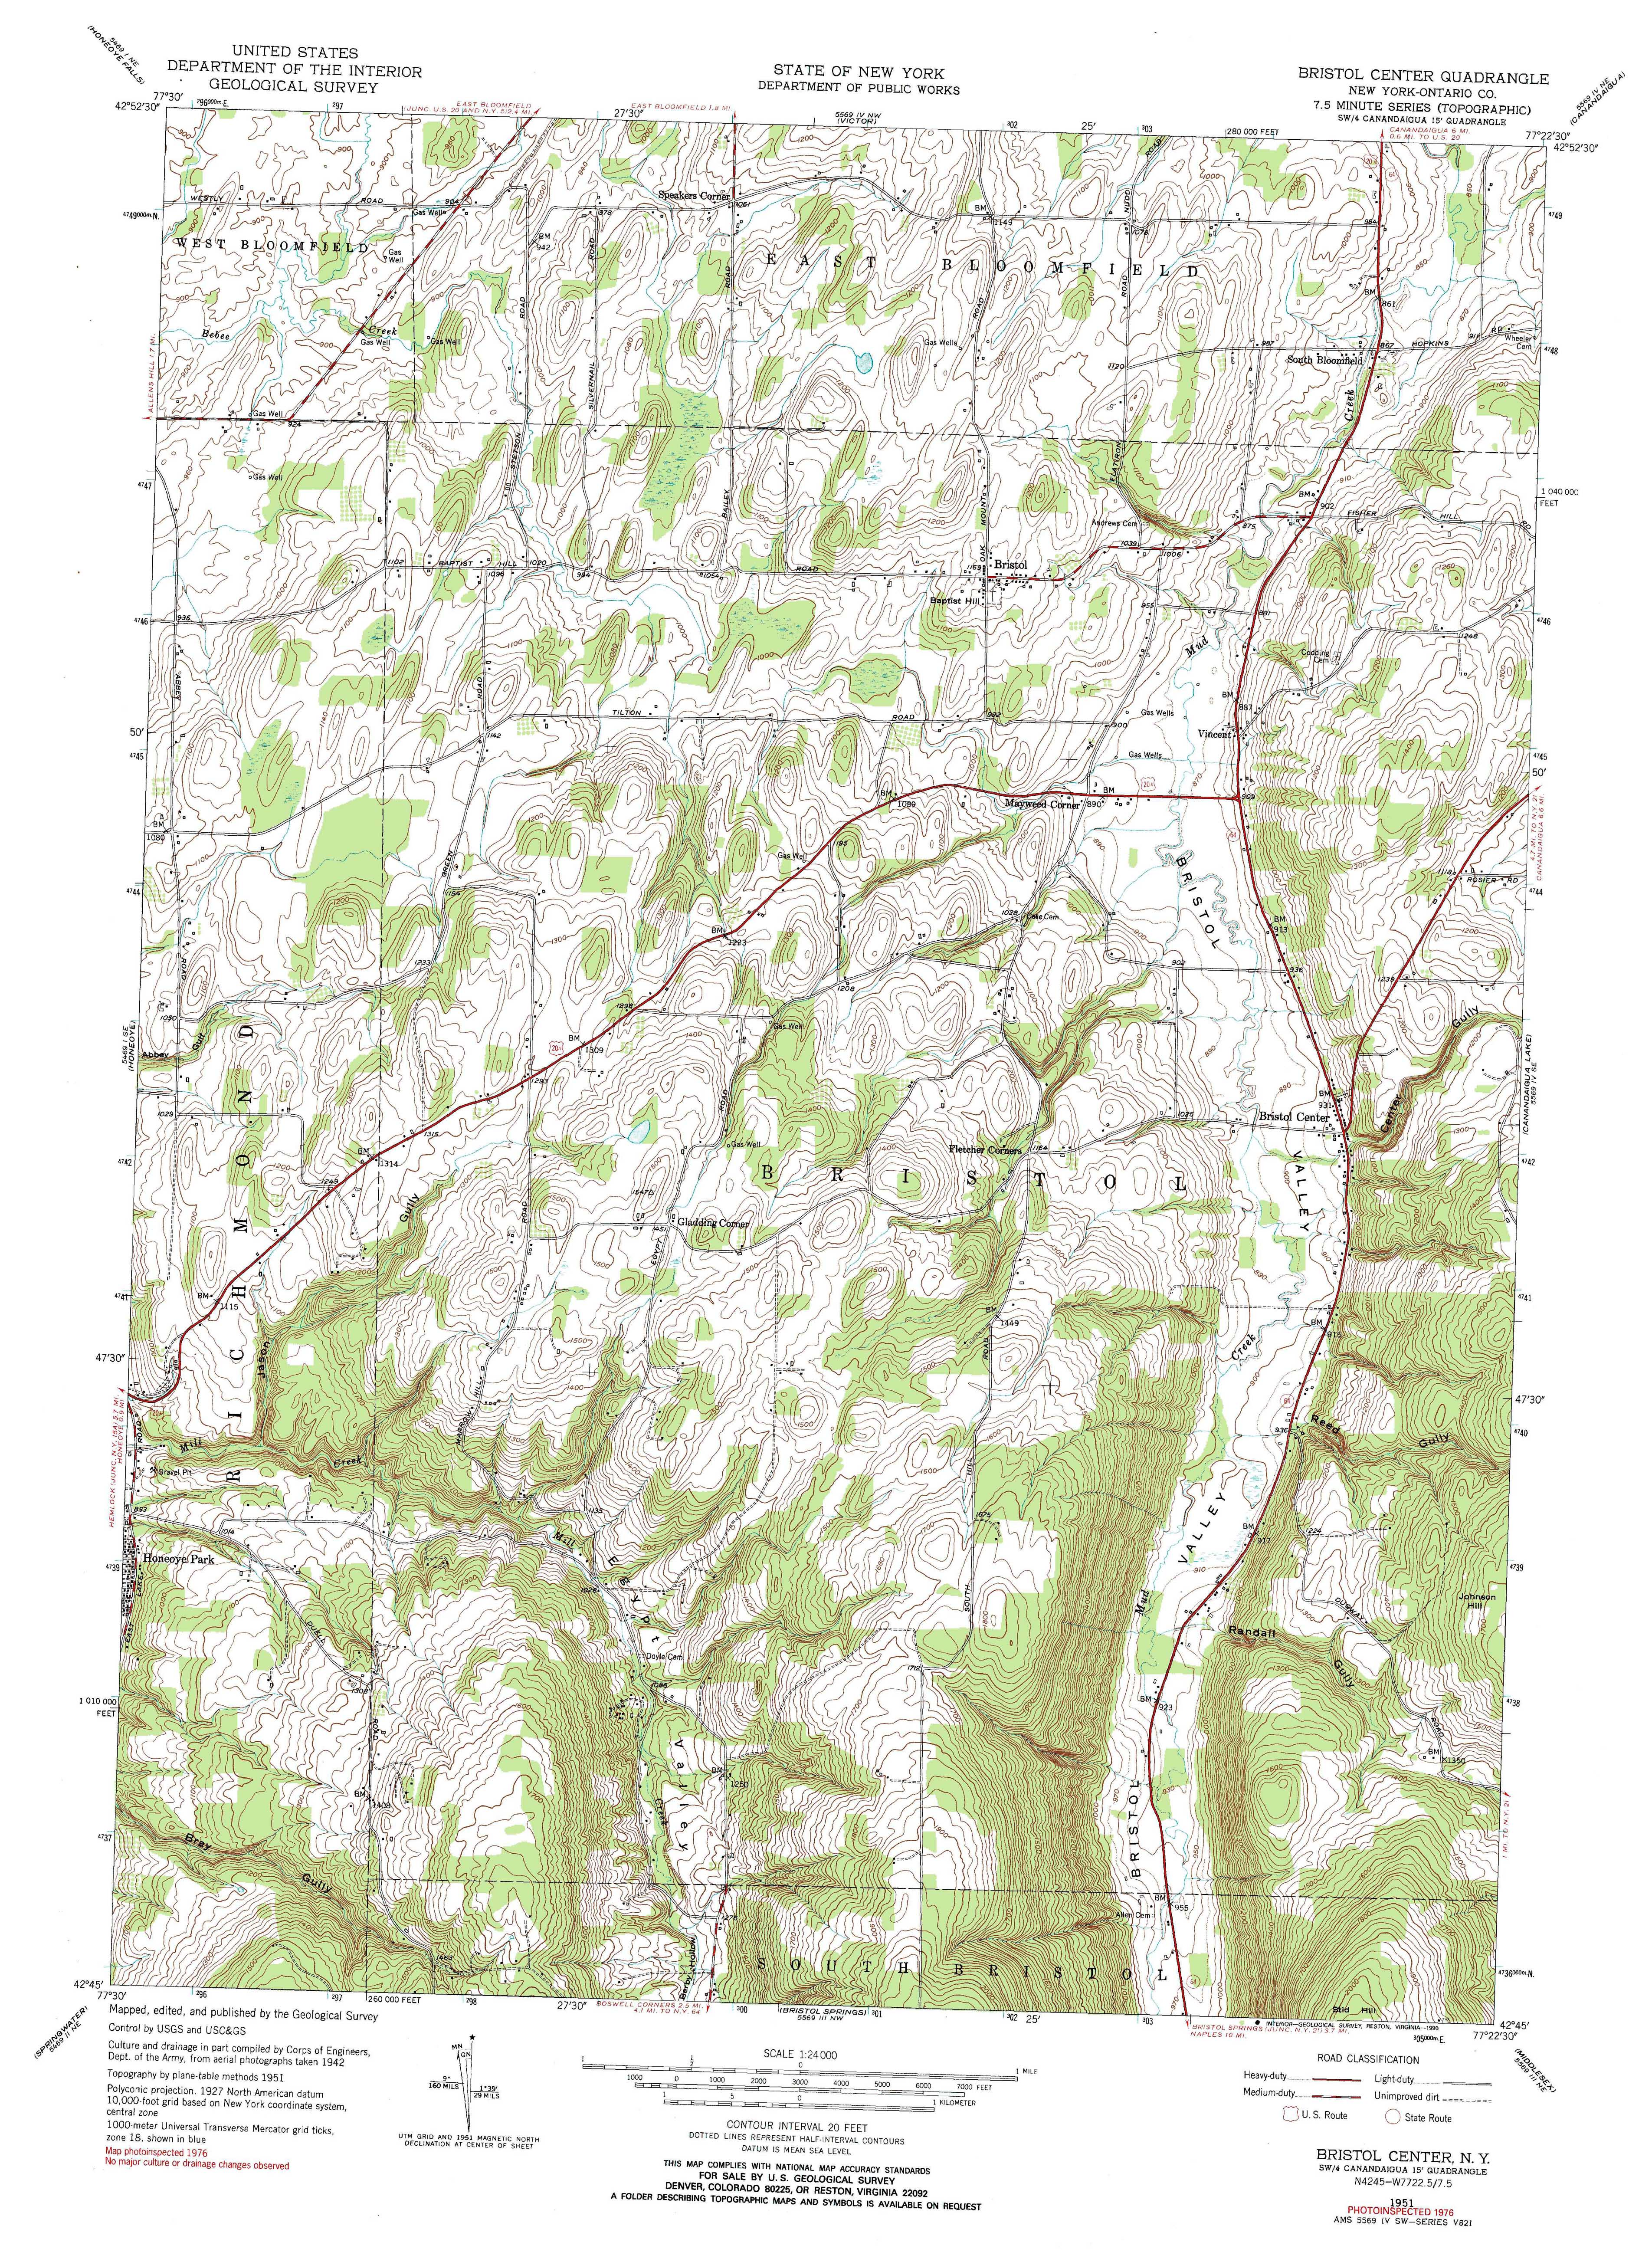 New York Topo Maps Minute Topographic Maps Scale - Usgs quad maps